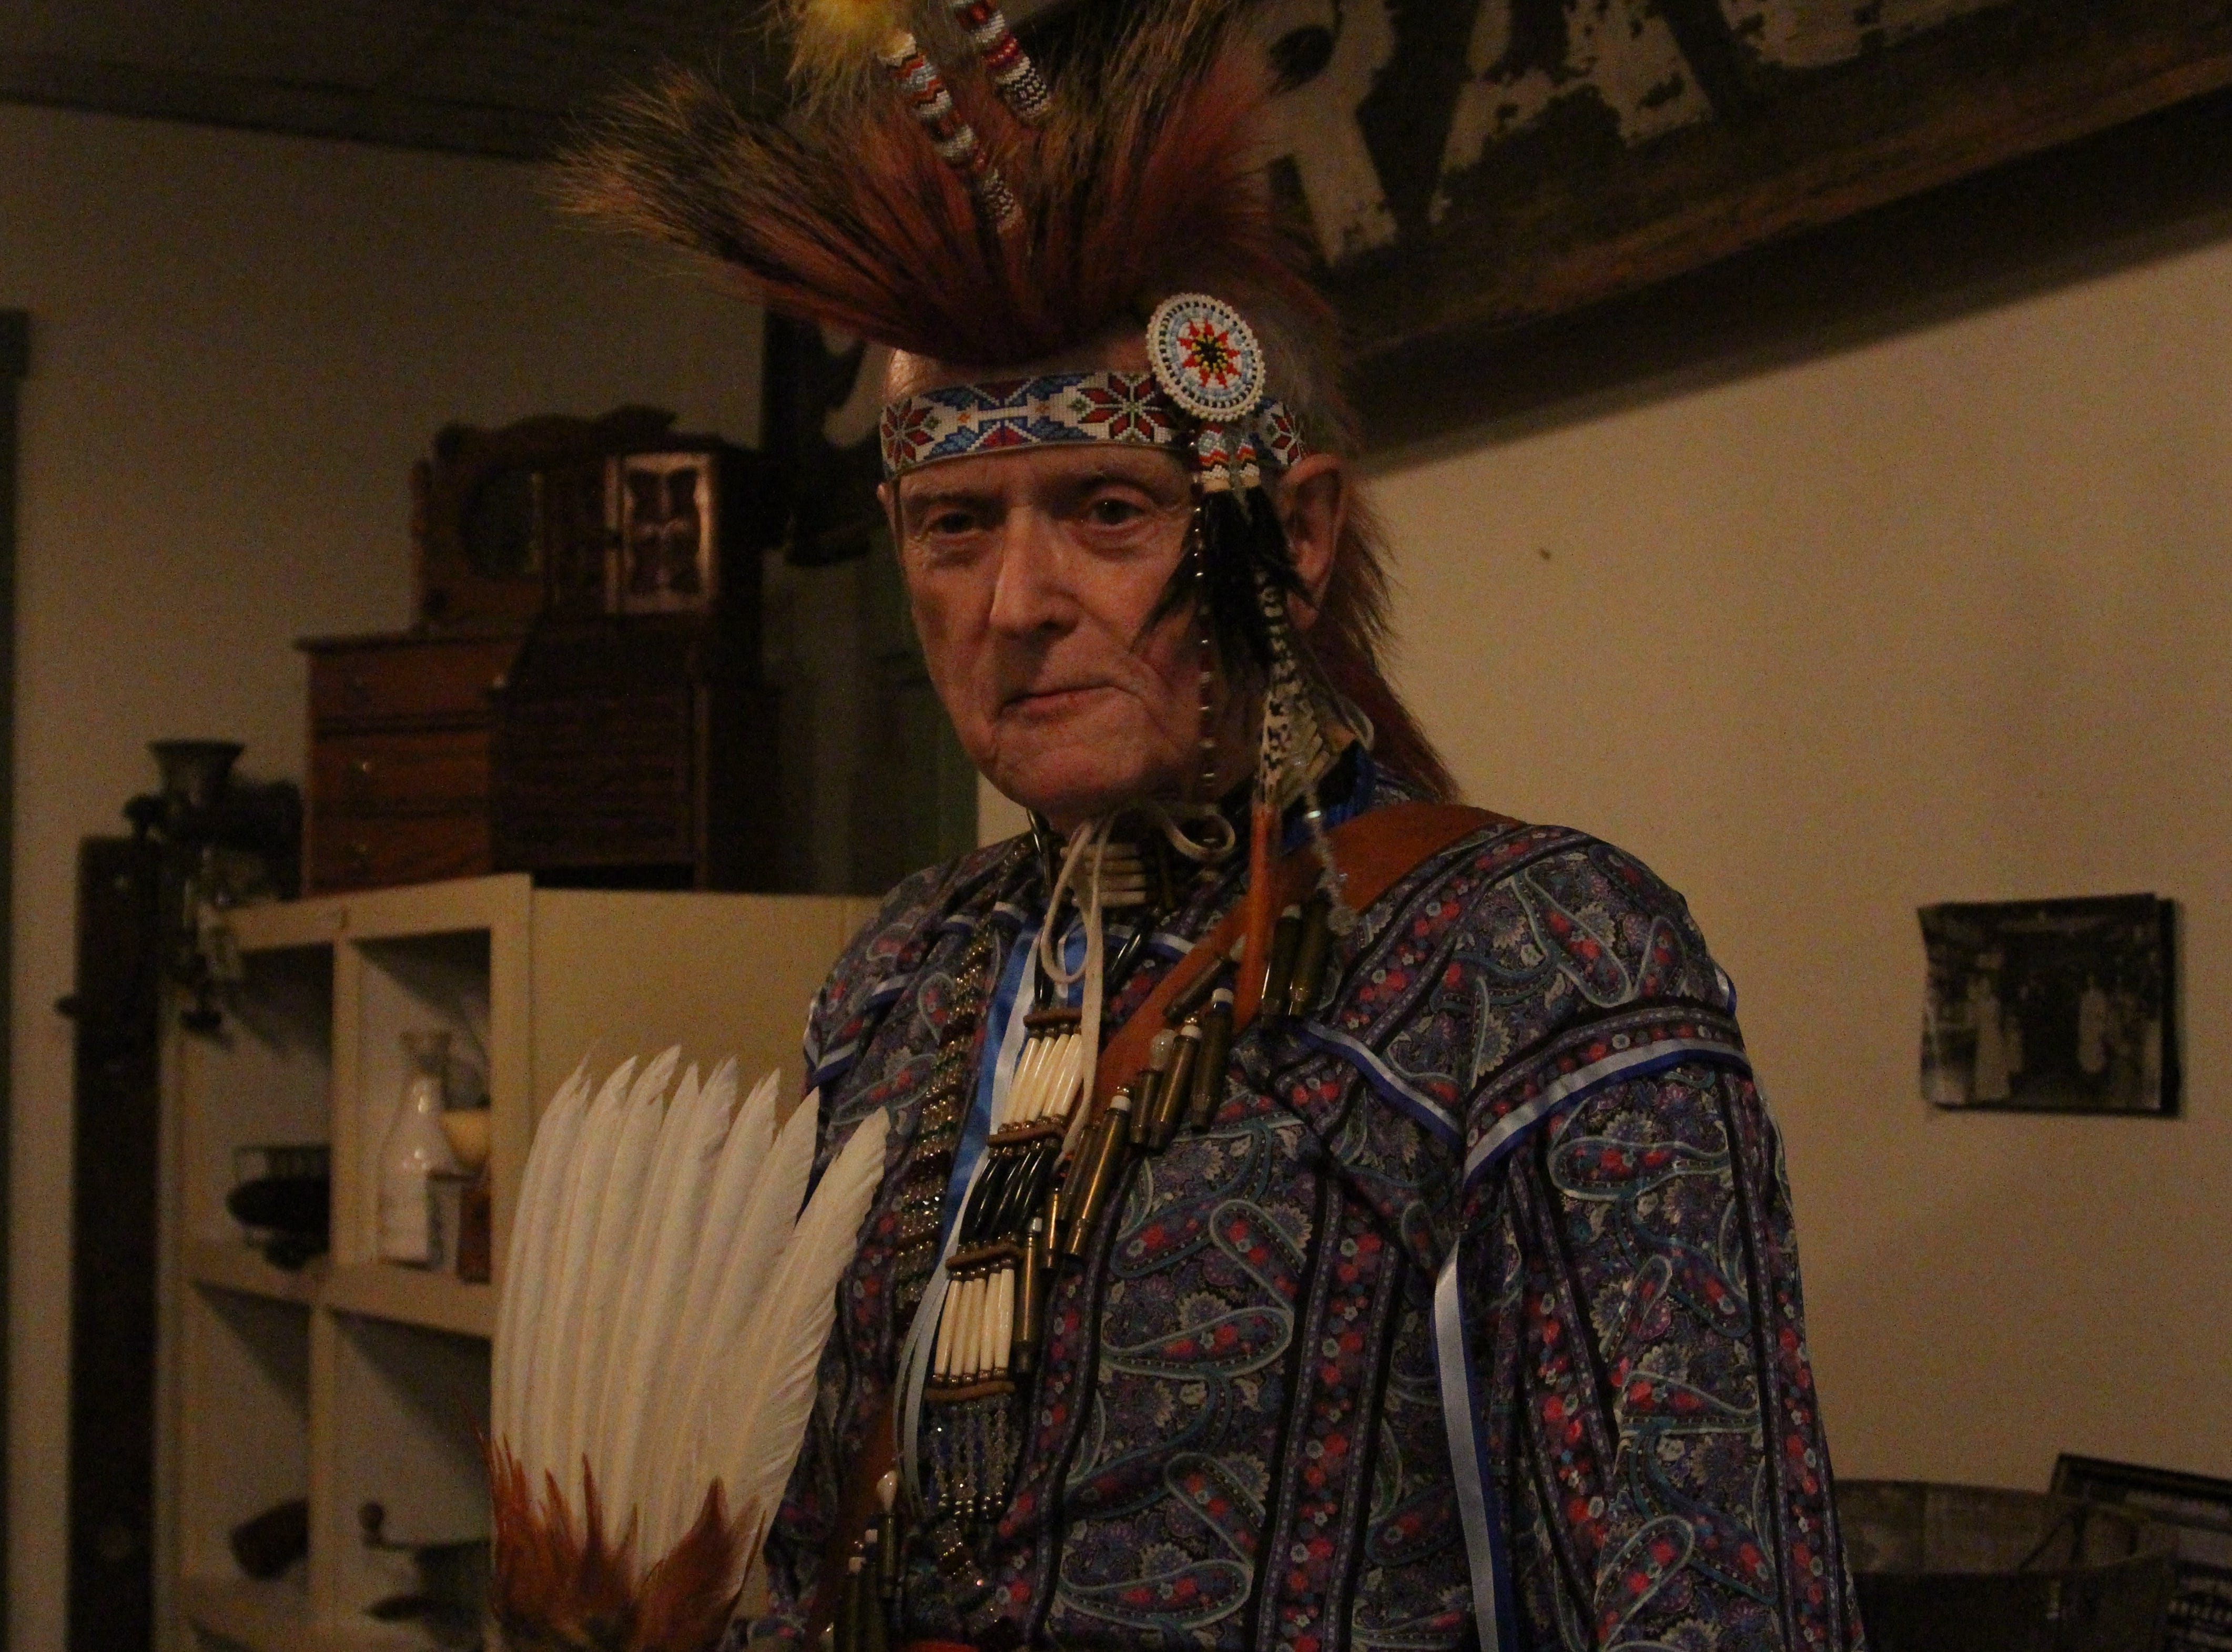 Willis Thomas portrayed Lenape tribesman Willing Turtle at Heritage Hall Friday evening. The Marion County Historical Society was busy Friday and Saturday night as some 46 volunteers portrayed local, state and national historical figures.